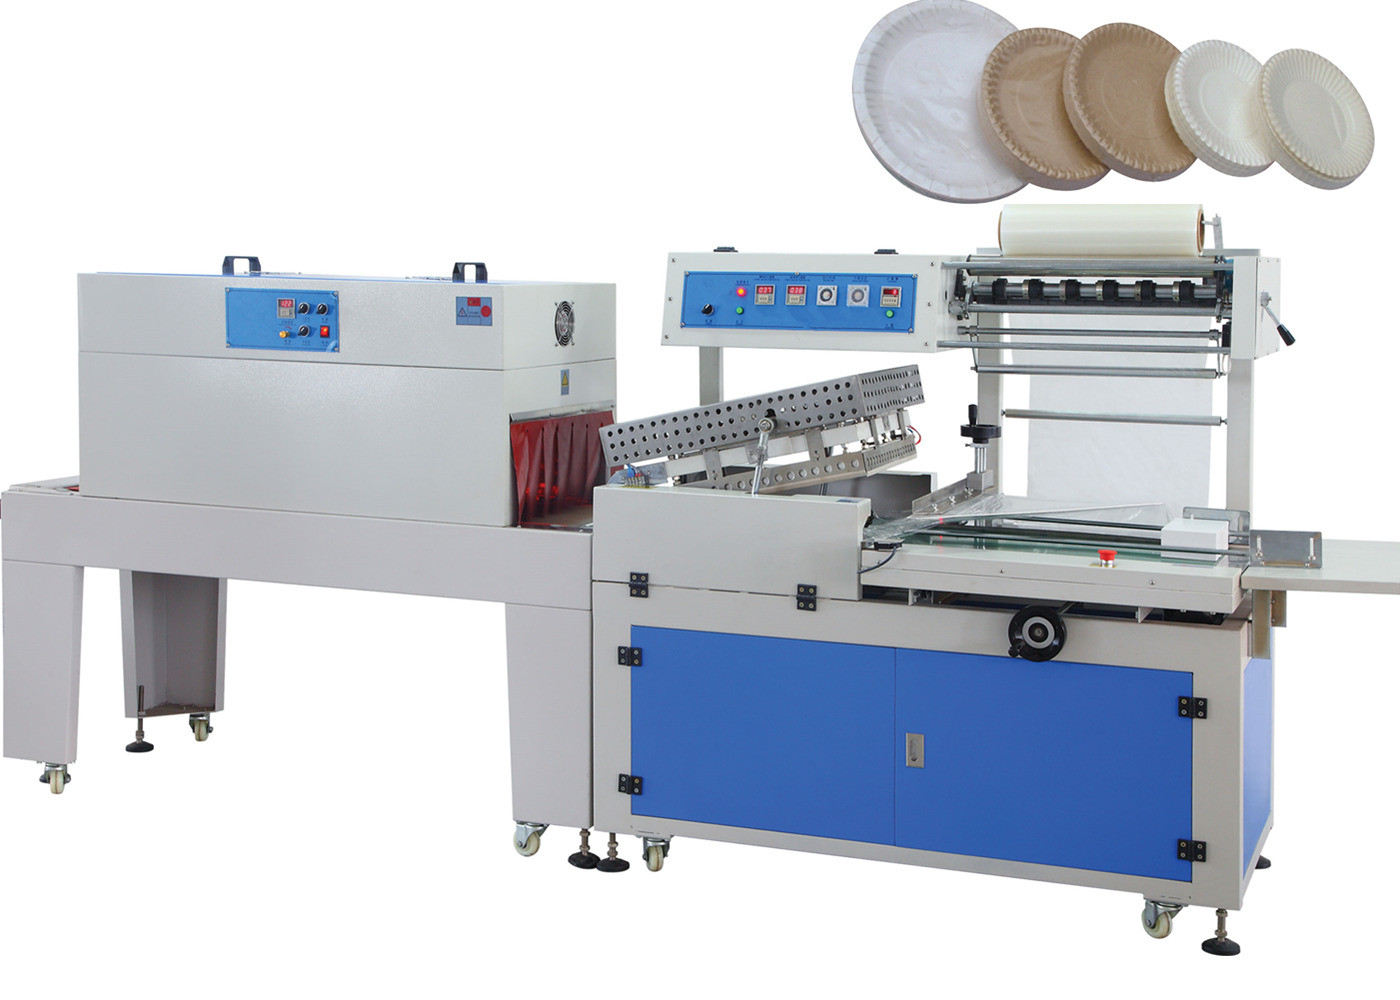 380V Automatic Shrink Wrapping Machine For Bottles , Shrink Wrap Equipment 50HZ - 60 HZ